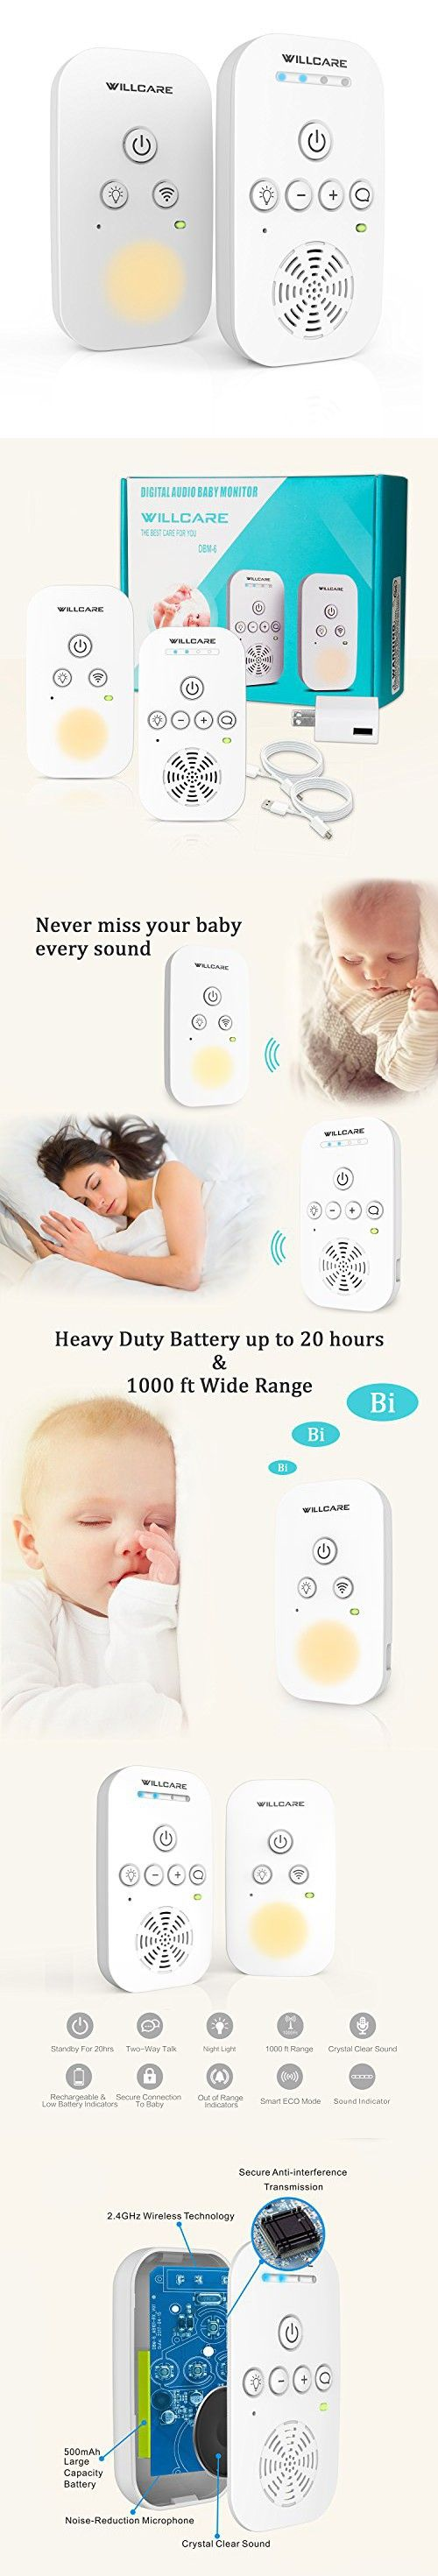 Baby Monitor, Willcare Portable Digital Audio Baby Monitor with Up to 1000ft Operating Range, Two-Way Talking Feature, Heavy-Duty Rechargeable Battery & HD Sound Listening System (white)